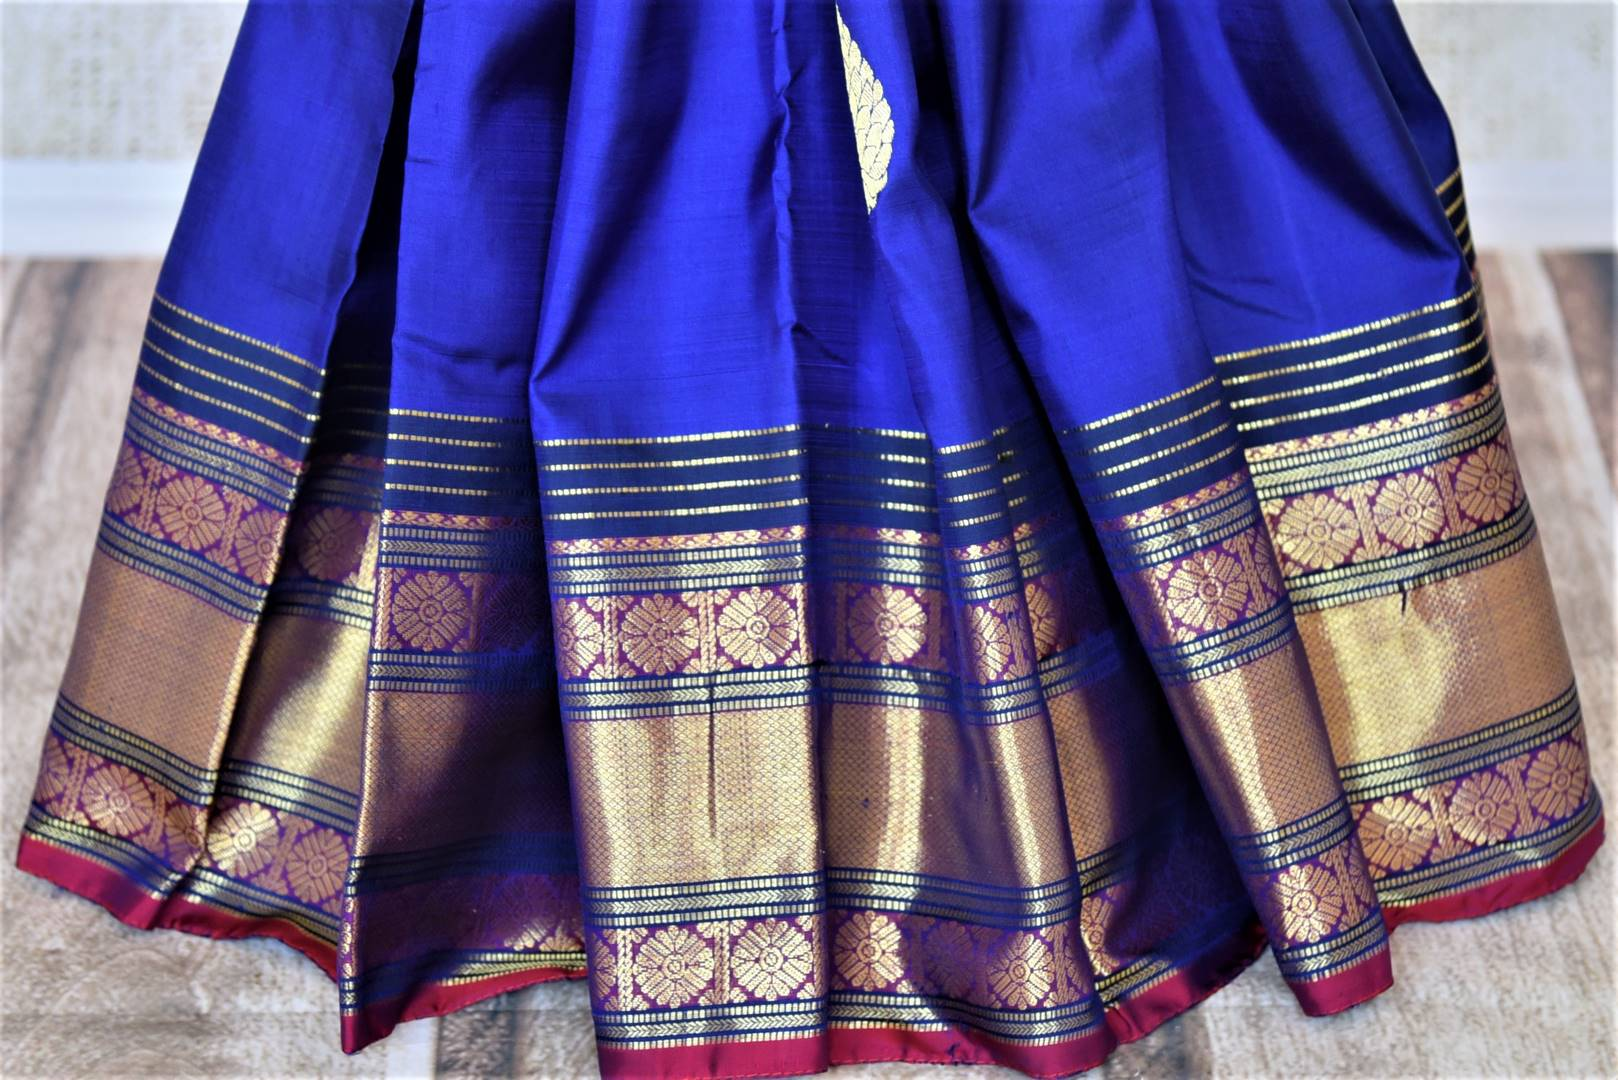 Shop beautiful dark blue Kanjivaram saree online in USA with golden zari border. For Indian women in USA, Pure Elegance Indian fashion store brings an exquisite collection Kanjeevaram sarees, Kanchipuram silk saris, tussar sarees, zari work sarees, pure silk sarees all under one roof. Shop online now.-pleats